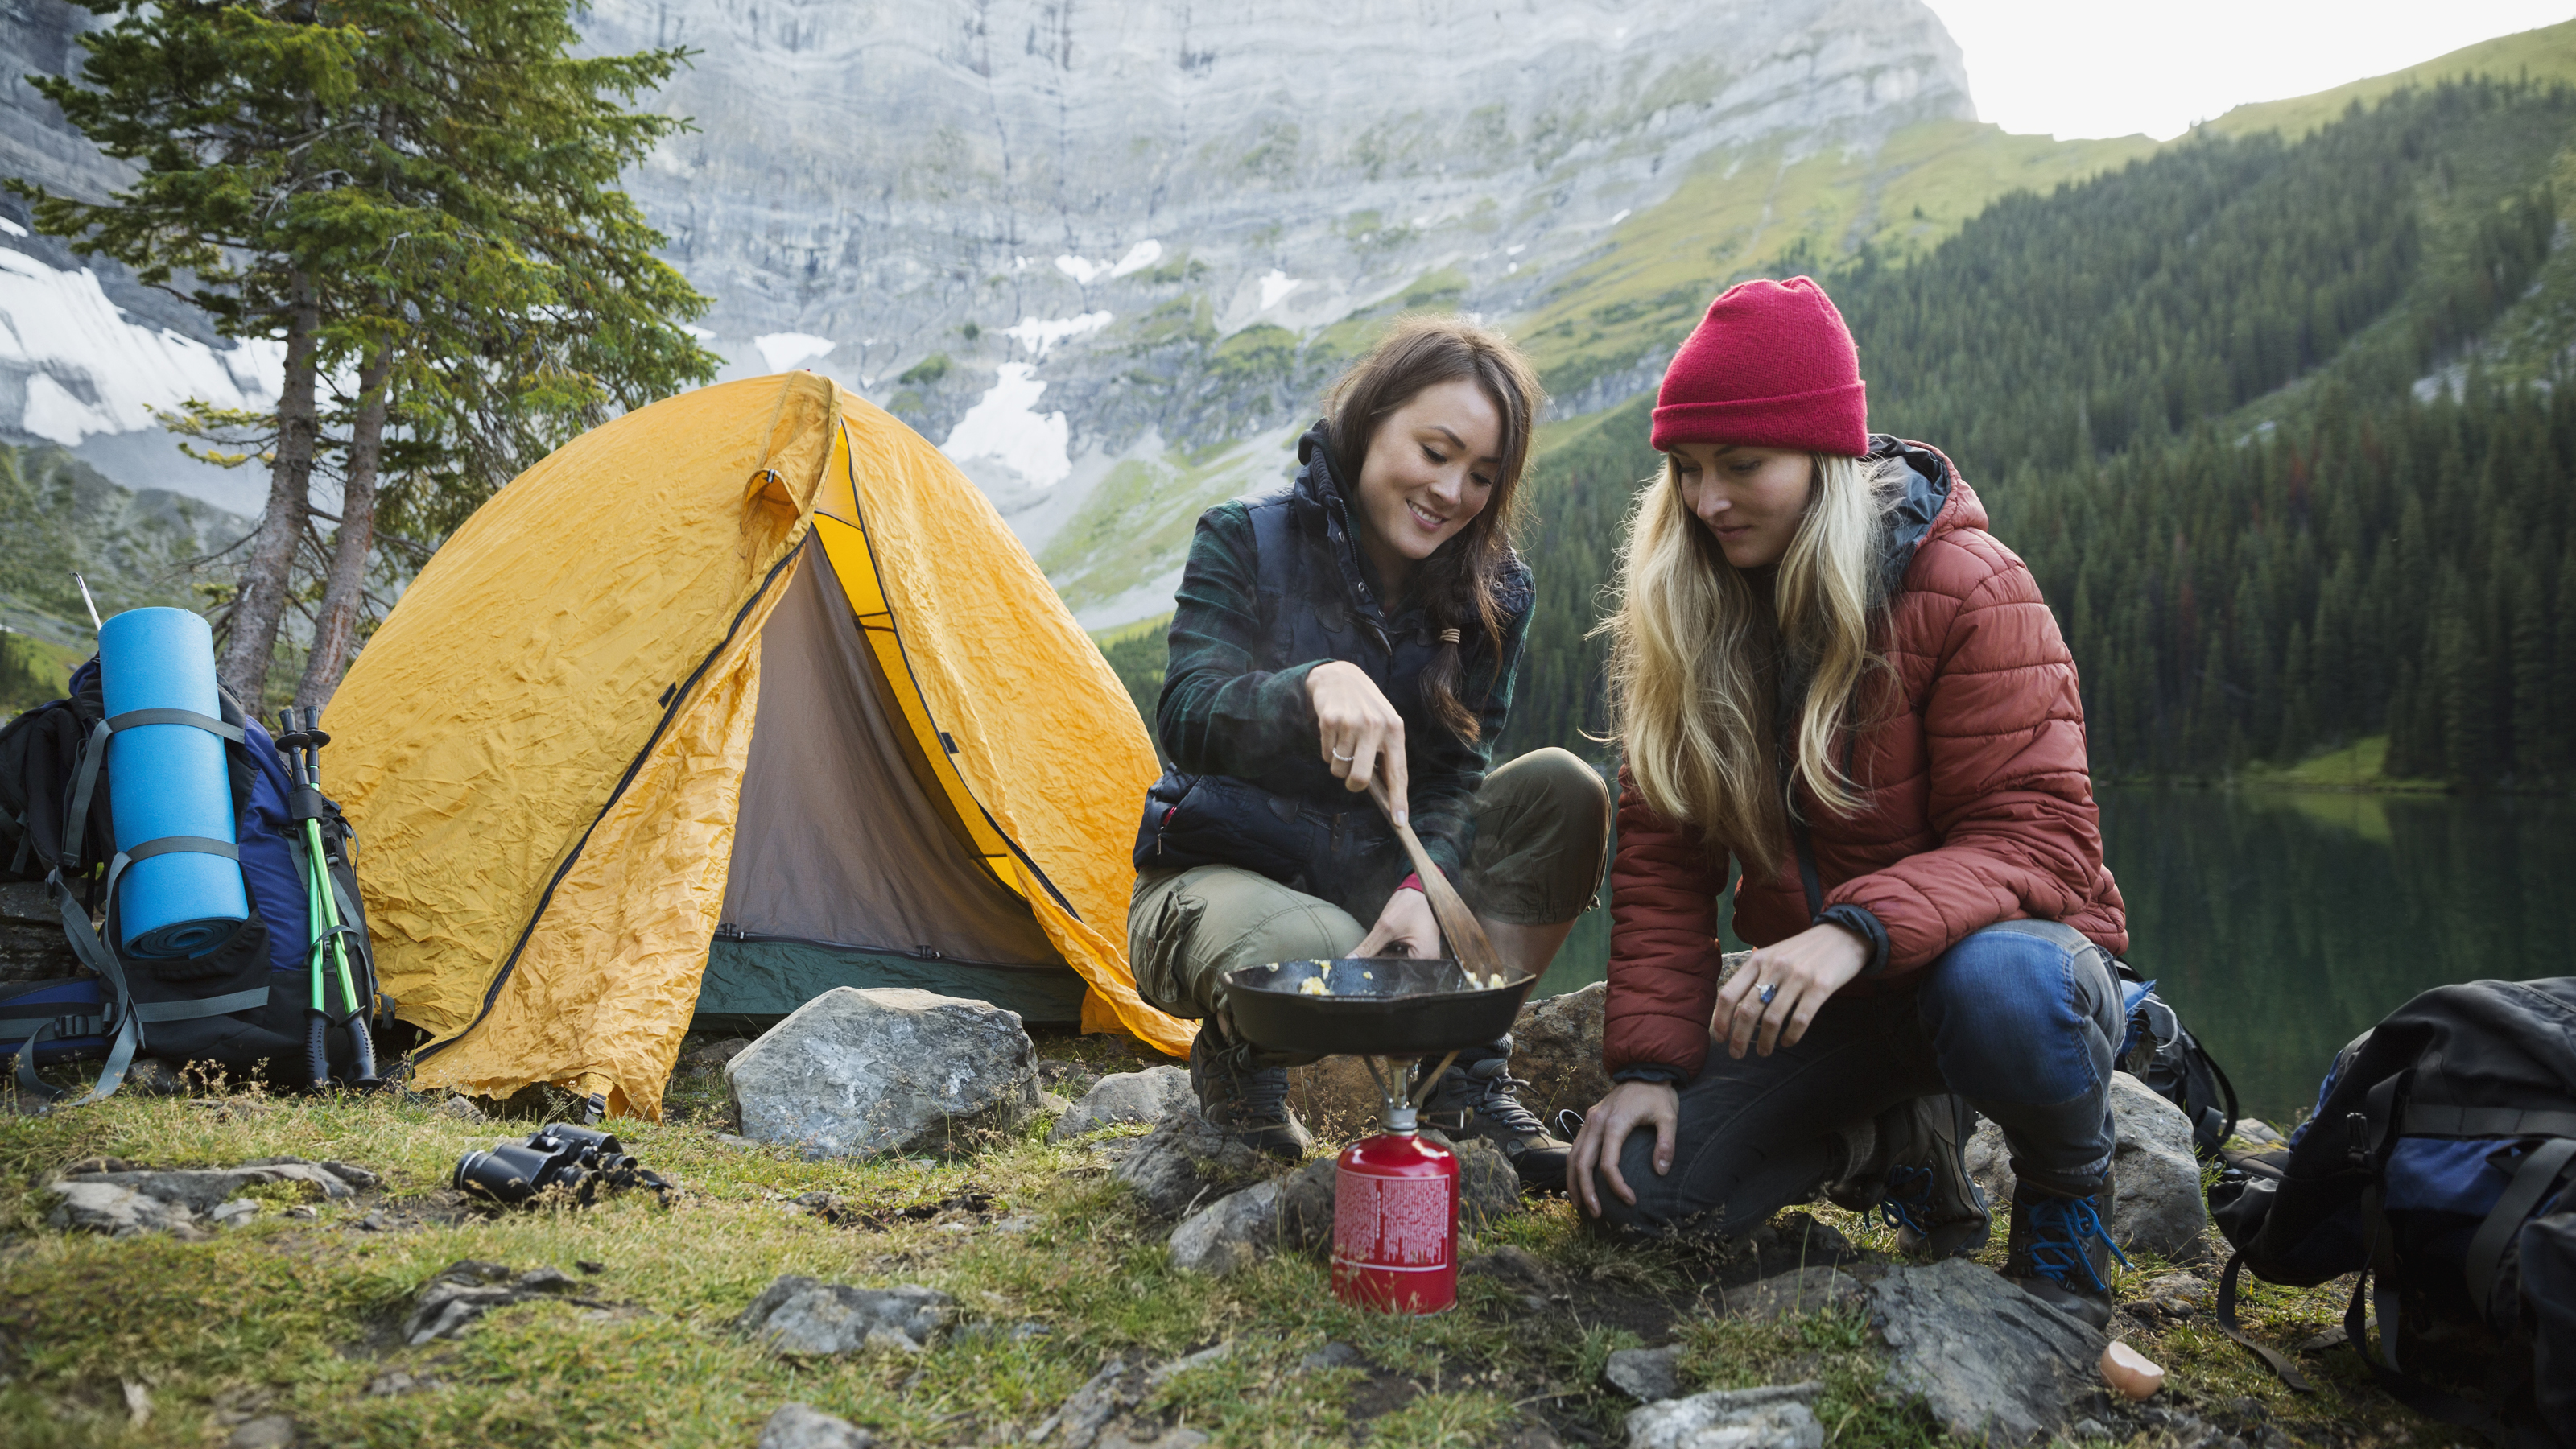 12 best tents 2019: for family camping holidays, solo